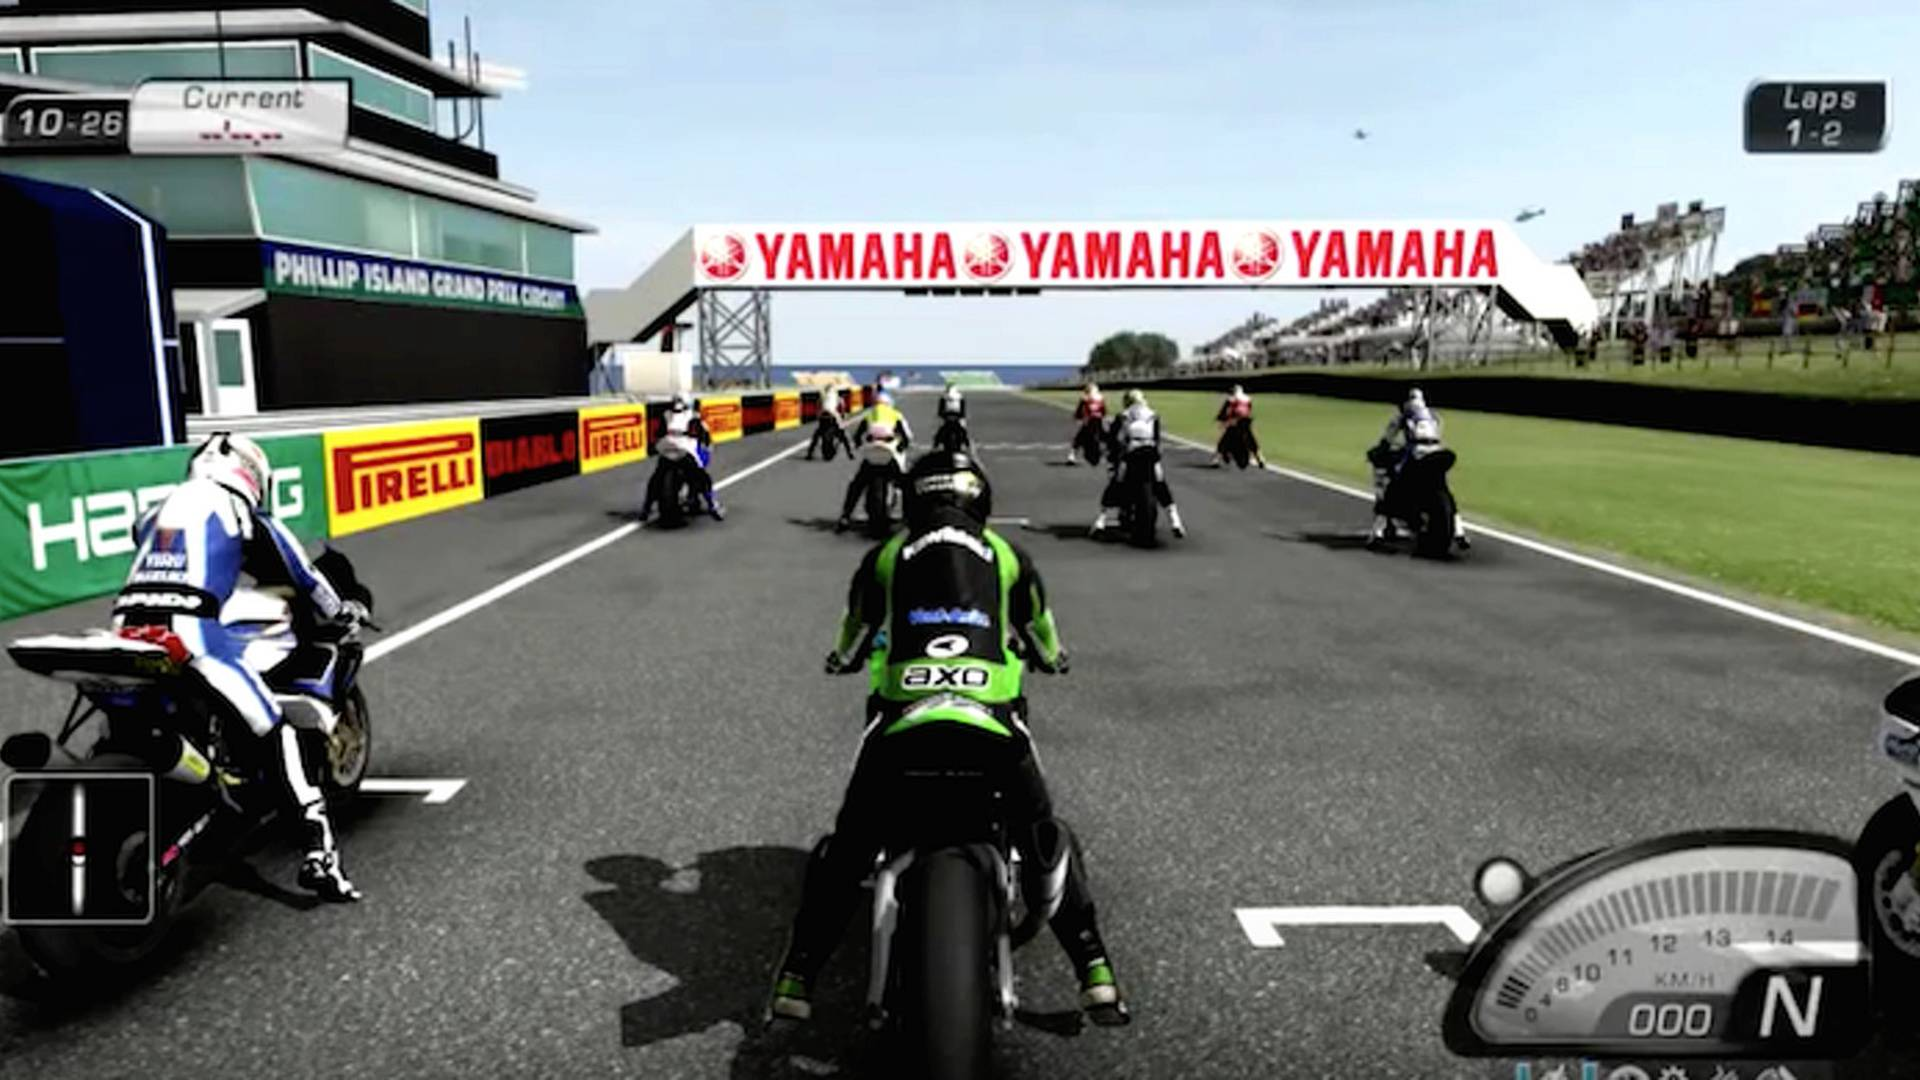 The 5 Motorcycle Games that Inspired Me